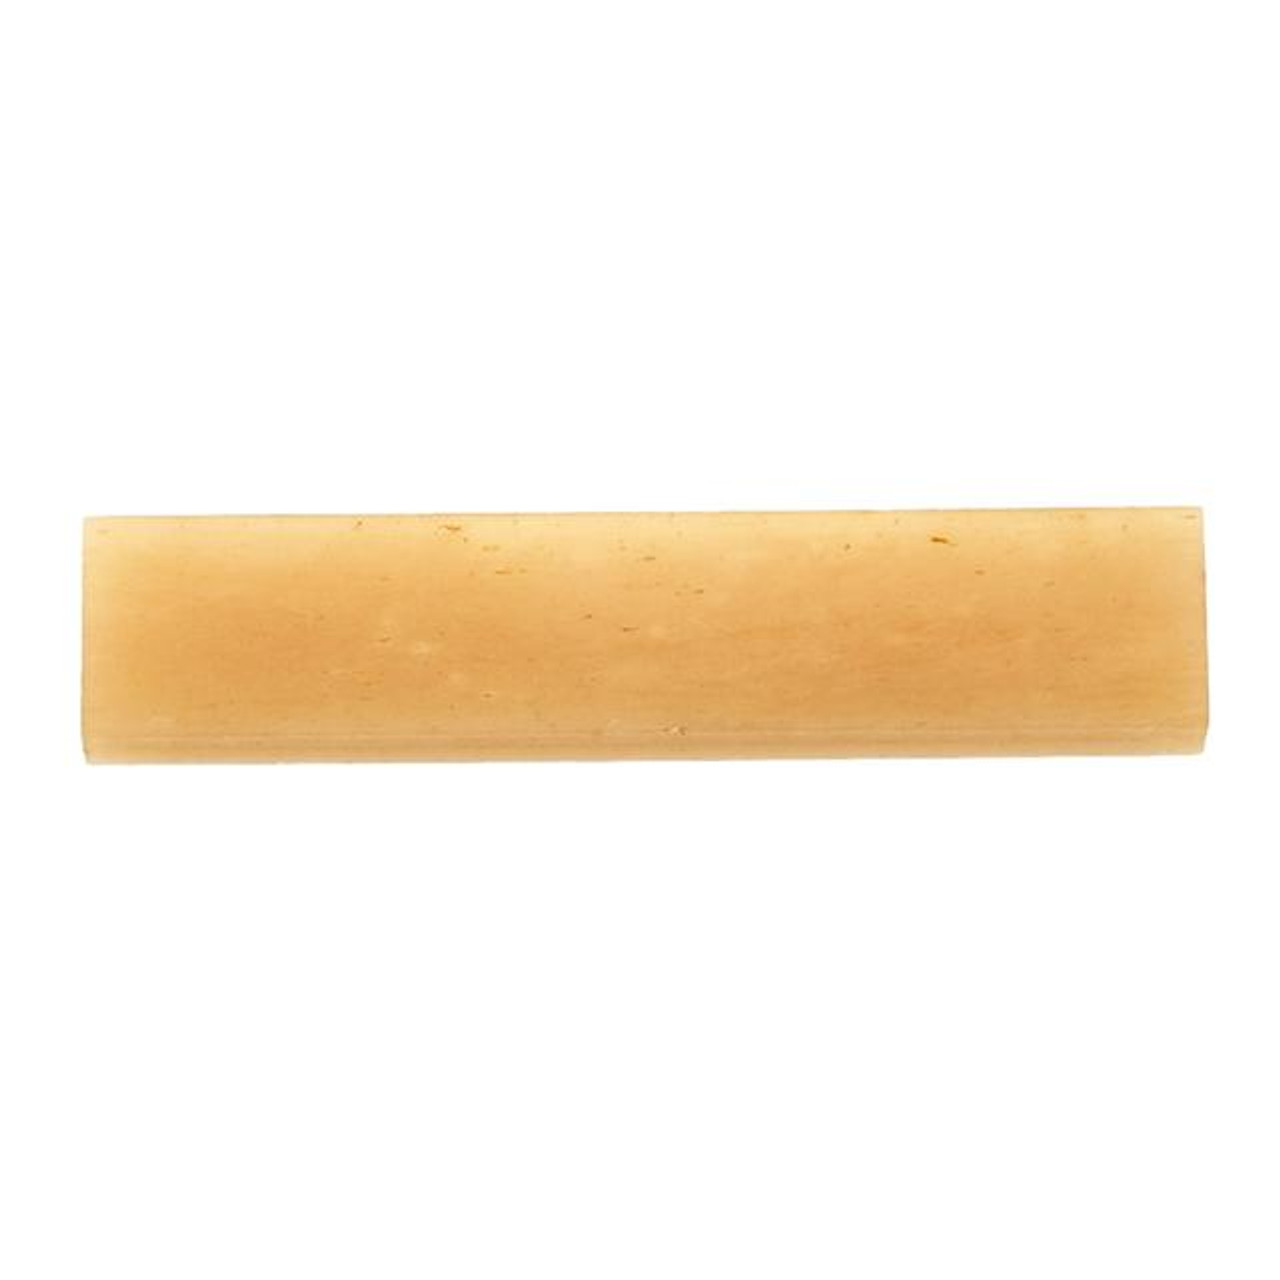 Unbleached Bone Nut - Blank